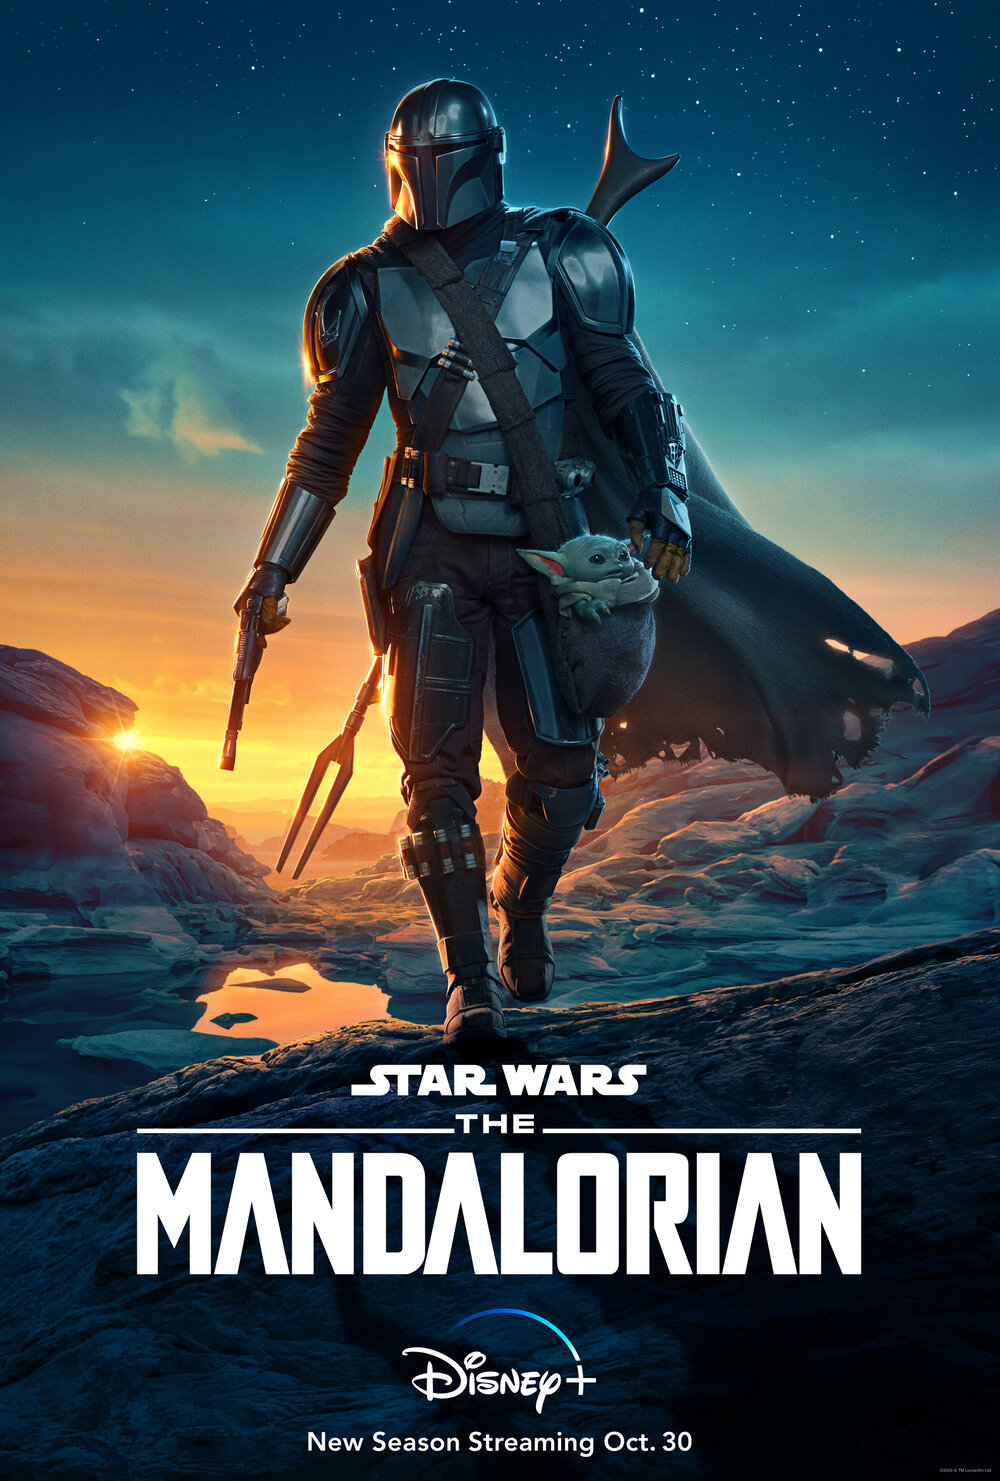 cool-poster-art-for-lucasfilms-the-mandalorian2